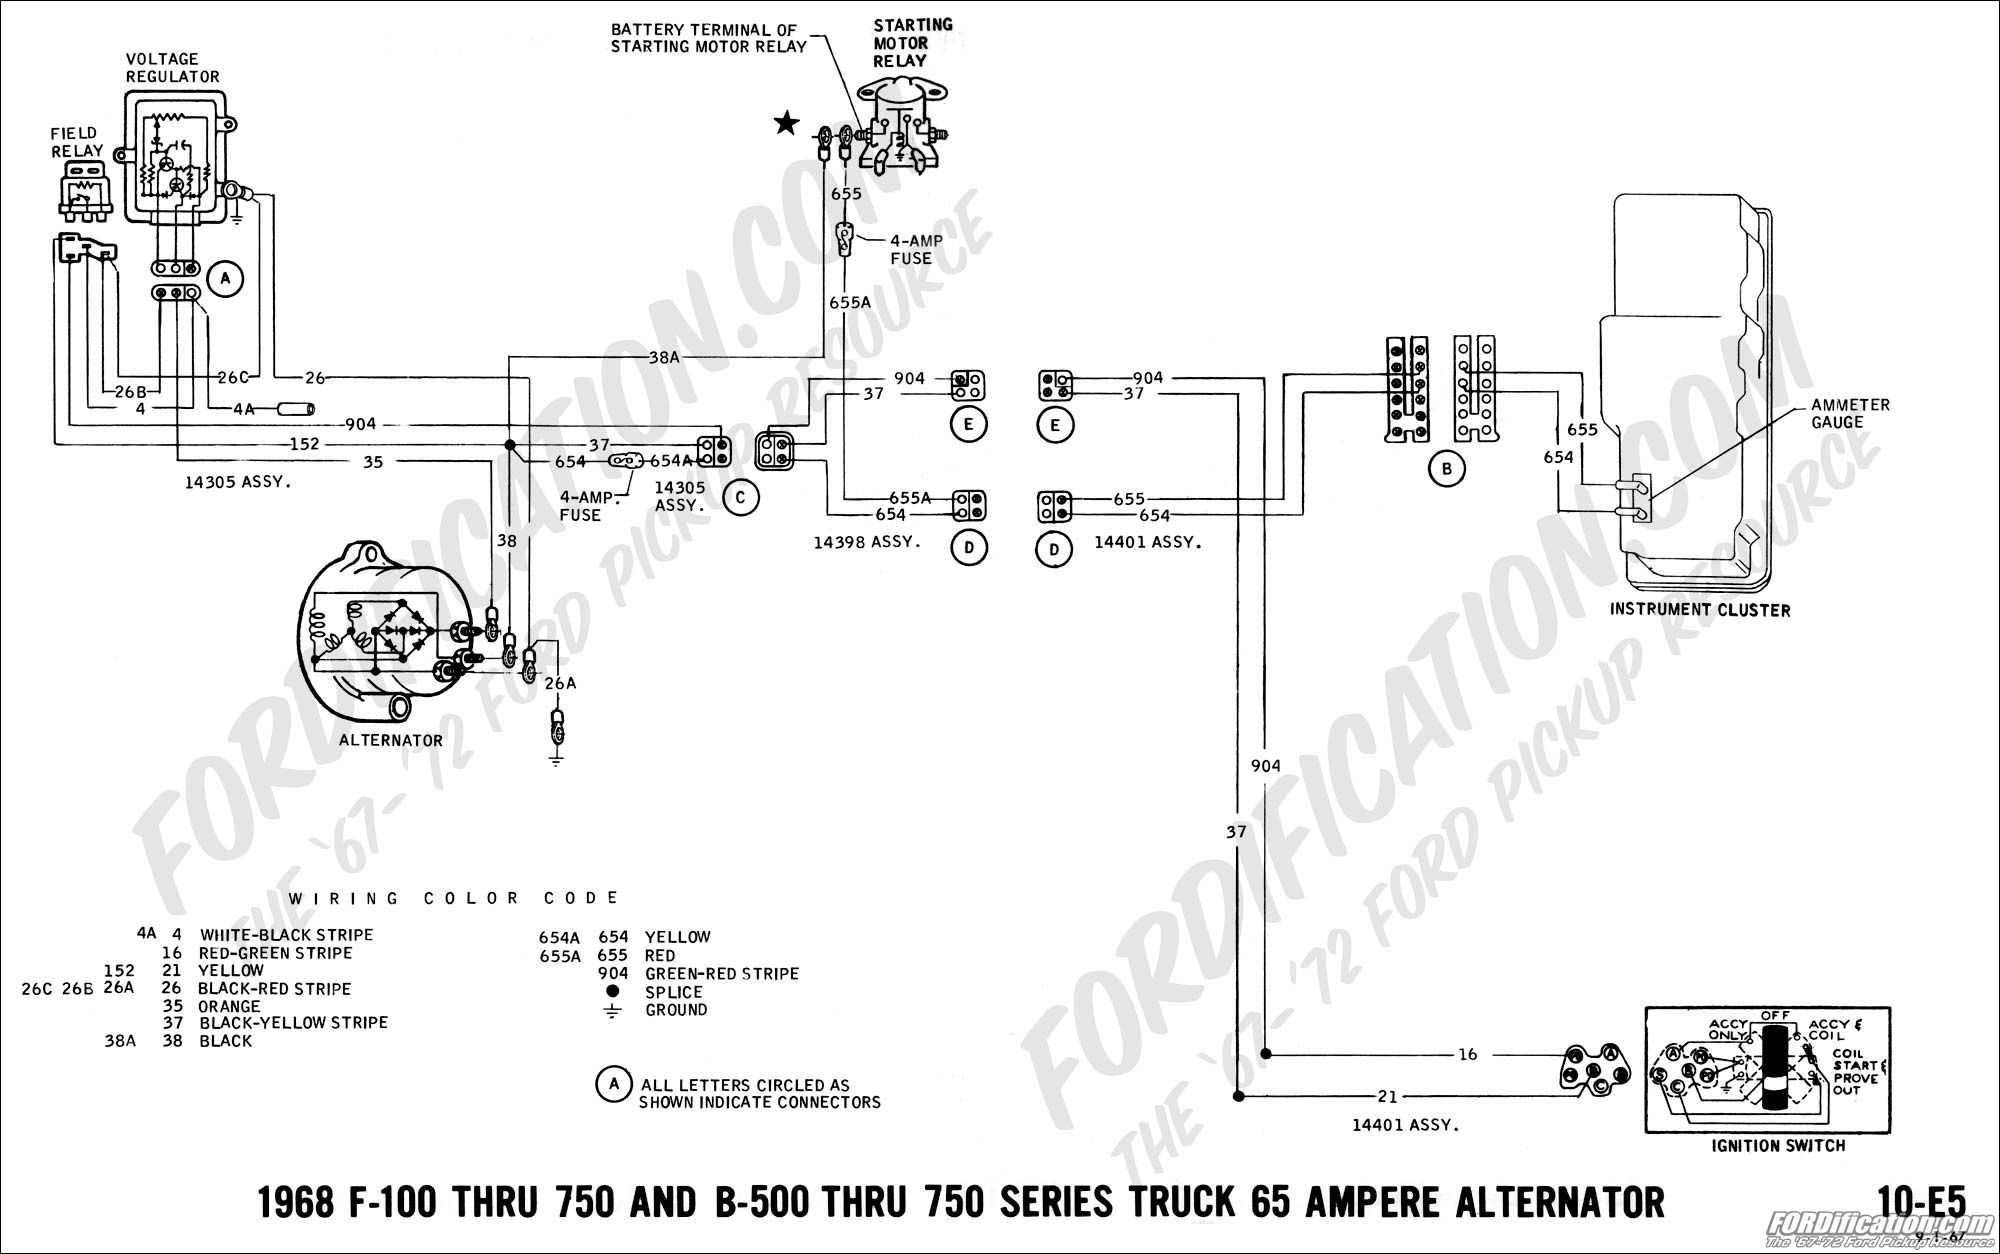 denso 3 wire alternator wiring diagram